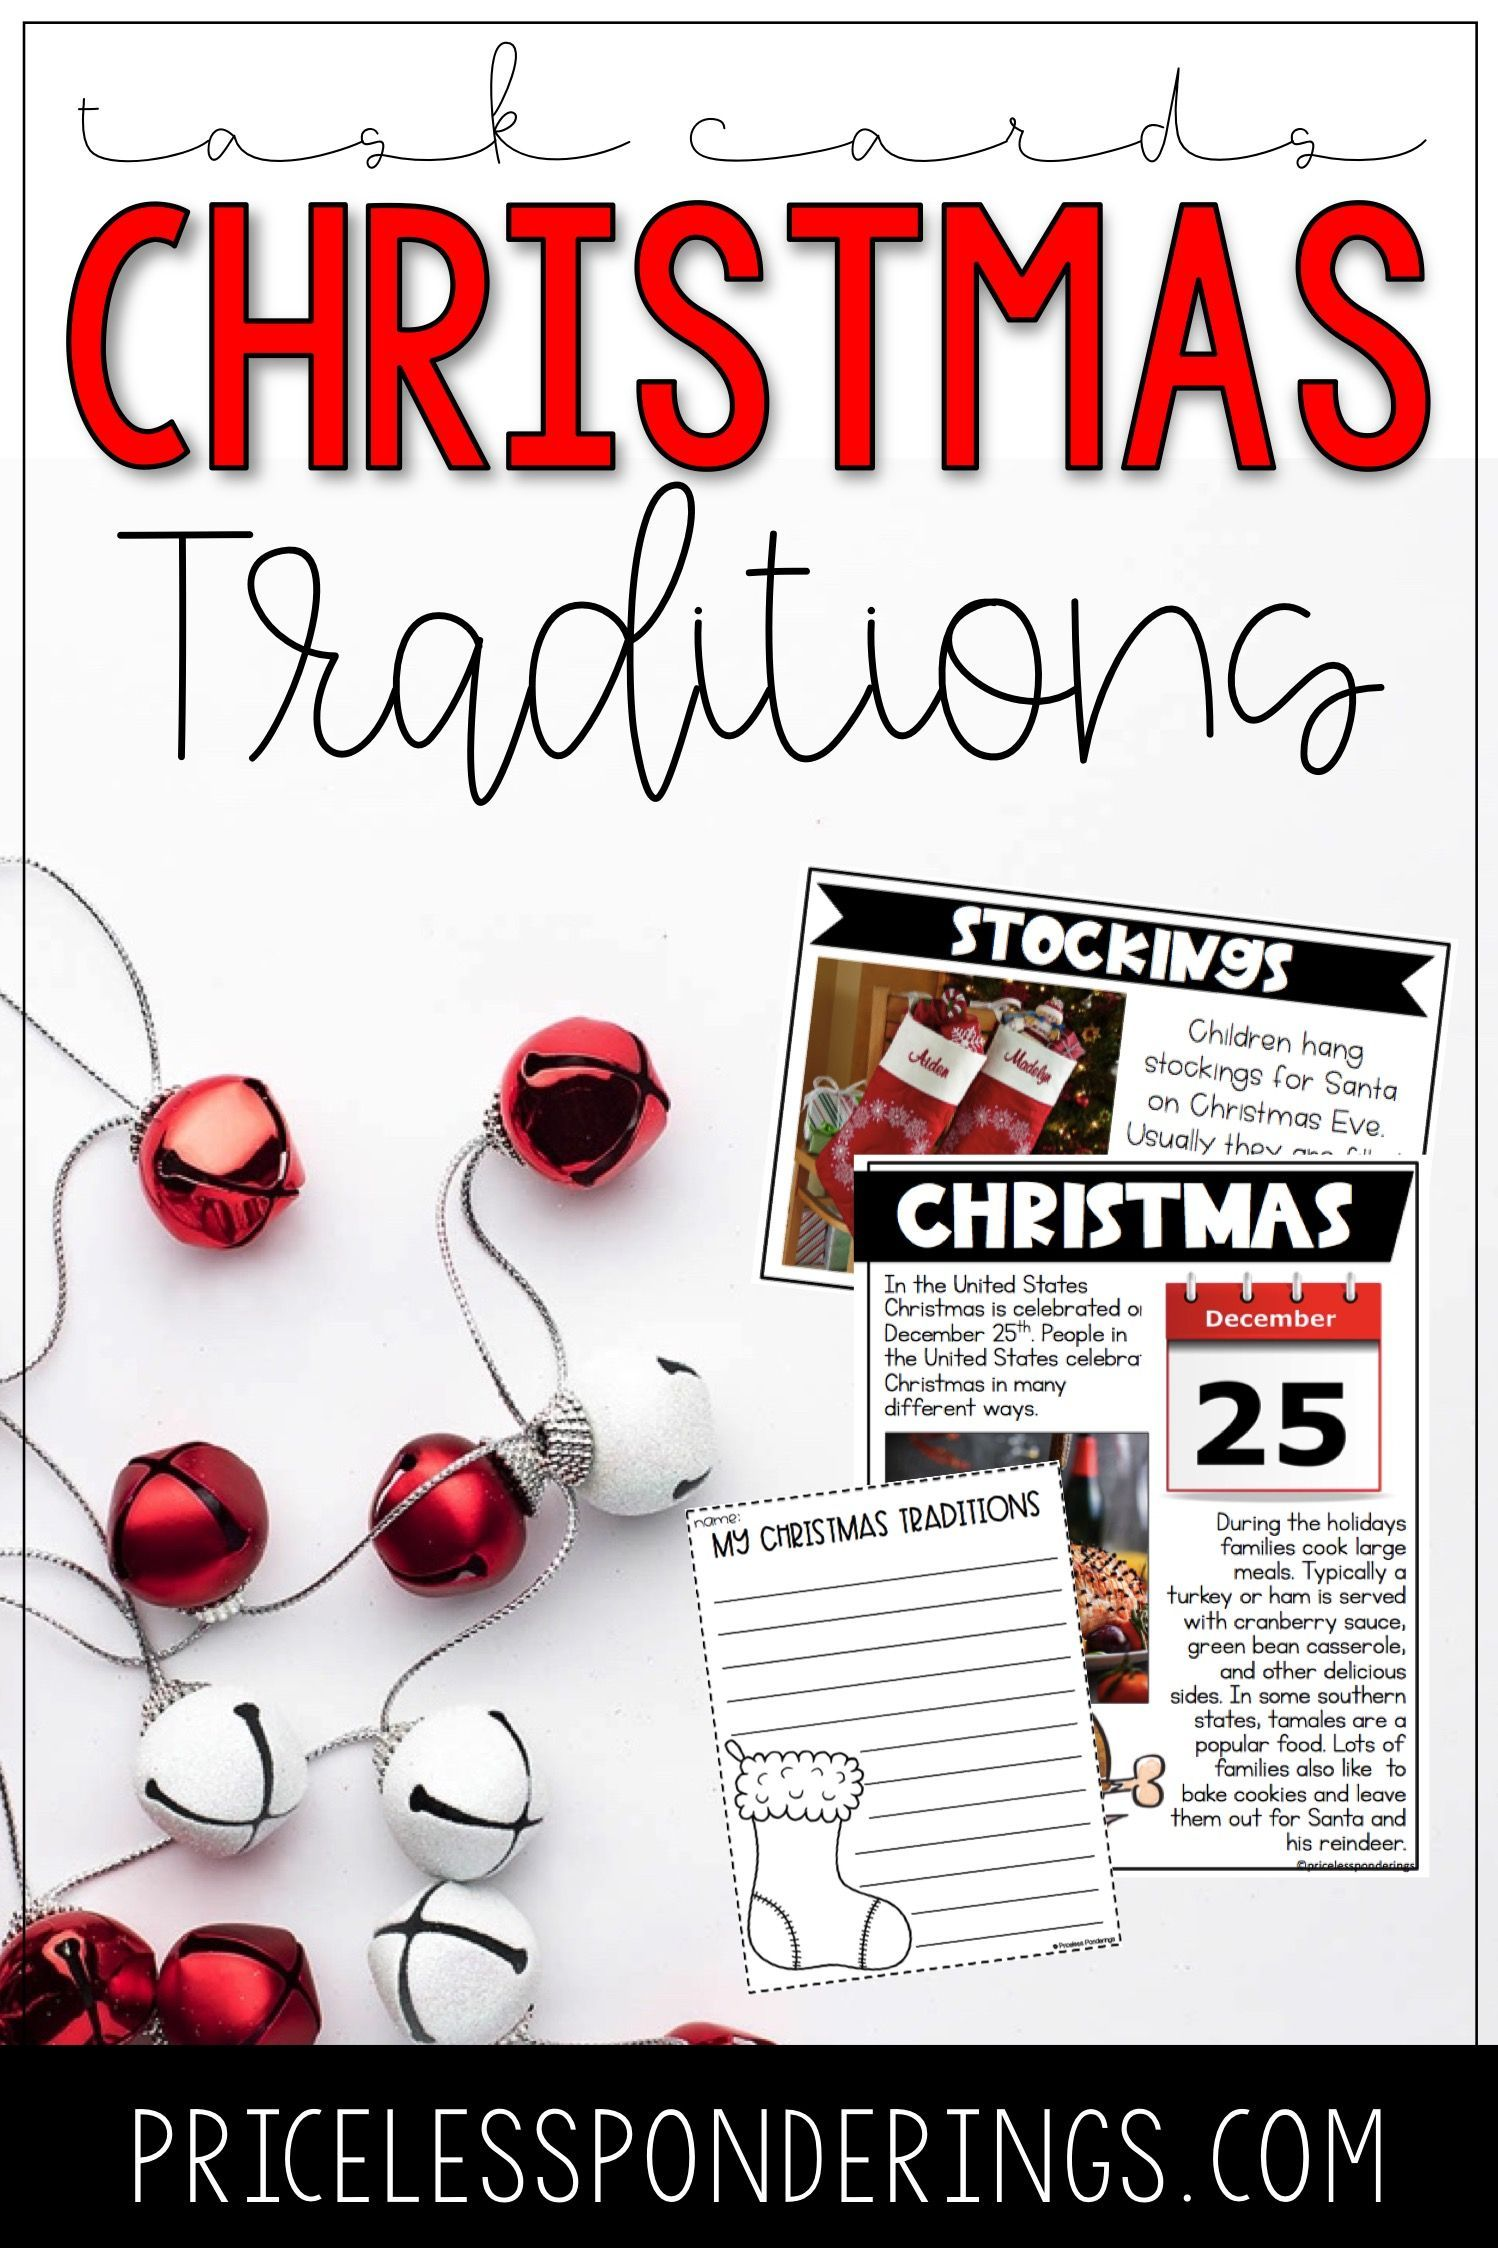 Are You Looking To Add Some Fun Holiday Traditions In Your